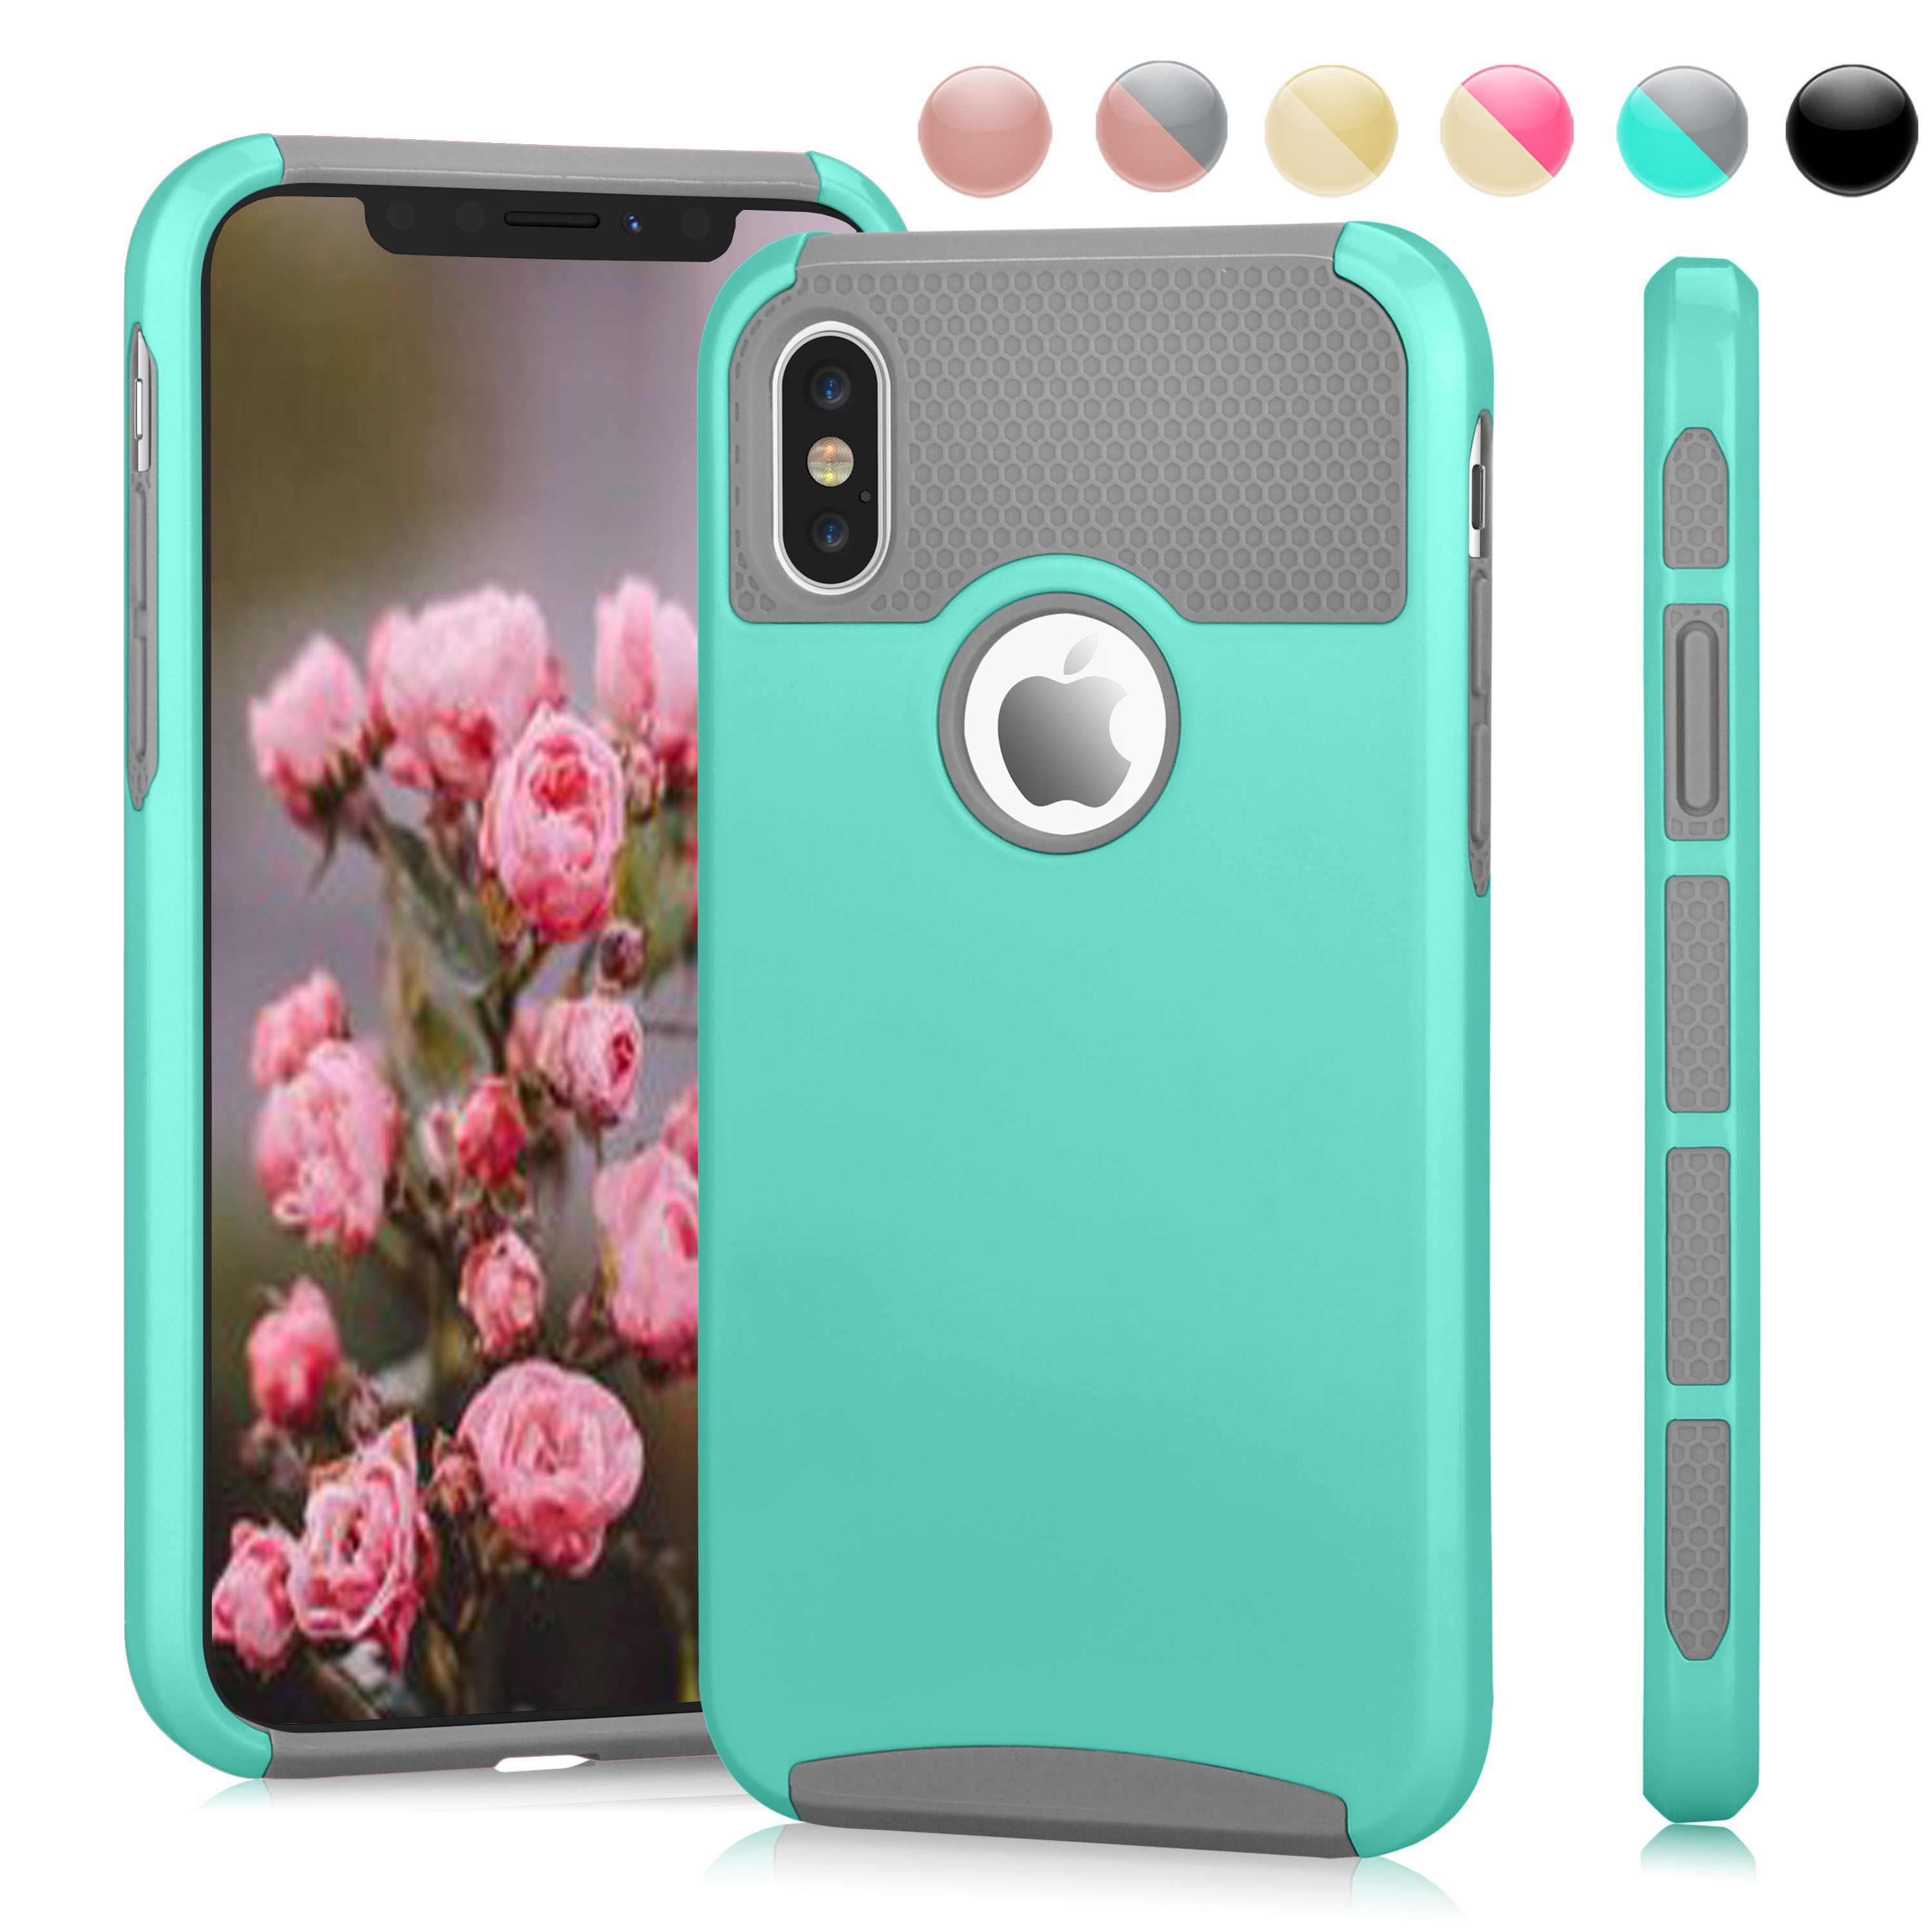 iPhone X Case, iPhone X Cute Case,iPhone 10 Case, Njjex Hybrid Rugged Shockproof Armor High Impact Defender Full Protective Case Cover For Apple iPhone X 2017 Release -Mint